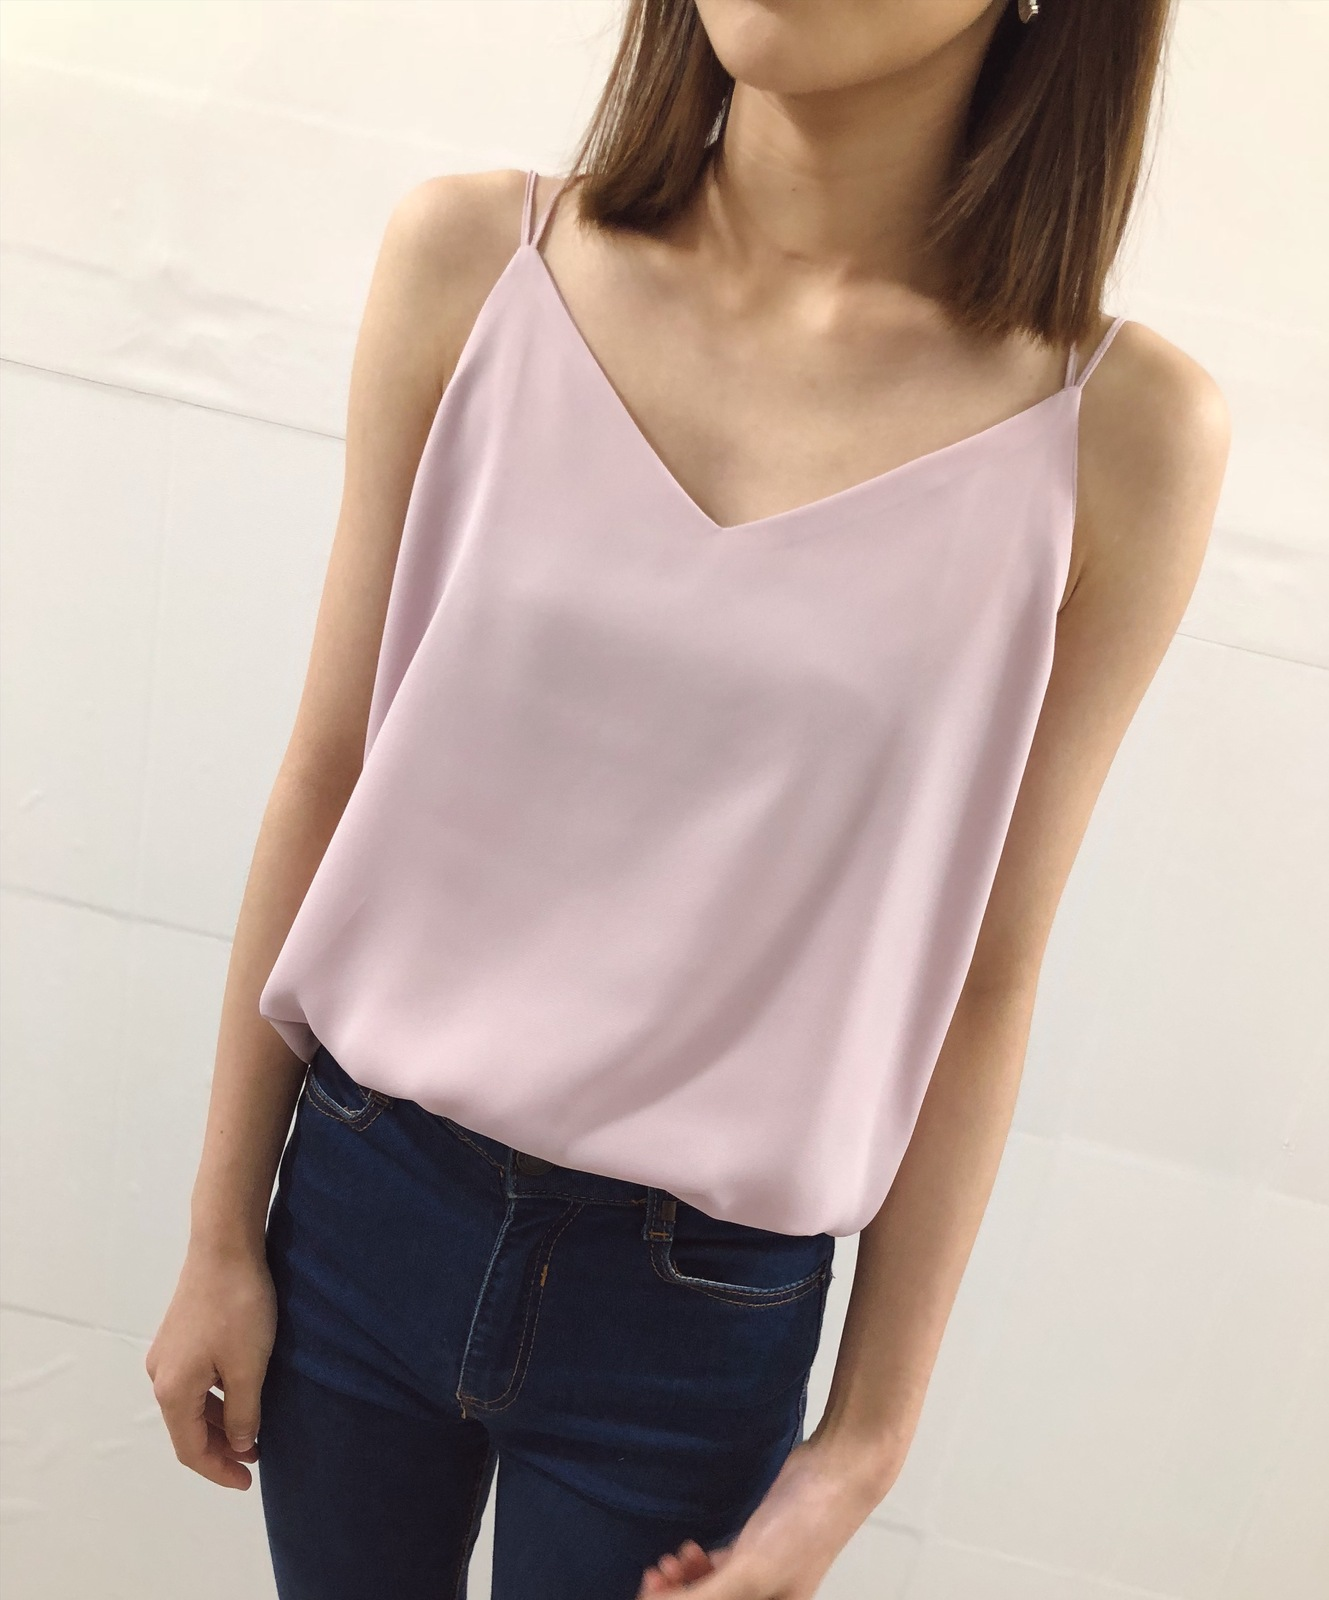 Plum Pink V-neck Summer Tops Sleeveless Chiffon Wedding Bridesmaid Tops Petite